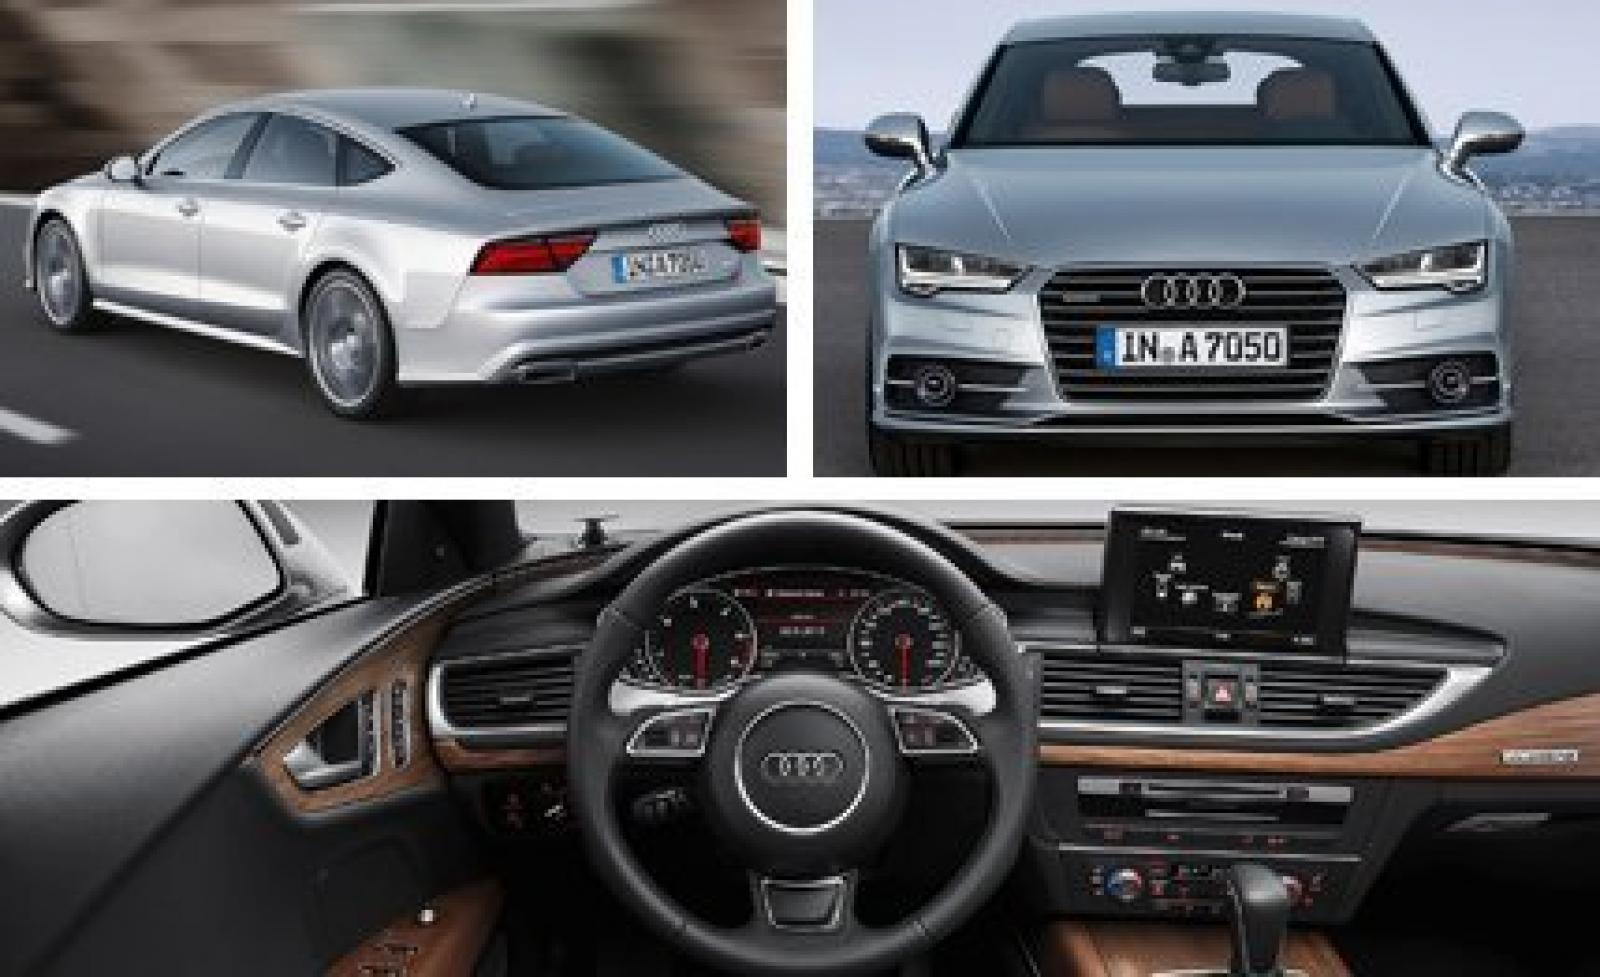 2015 audi a7 information and photos zombiedrive. Black Bedroom Furniture Sets. Home Design Ideas